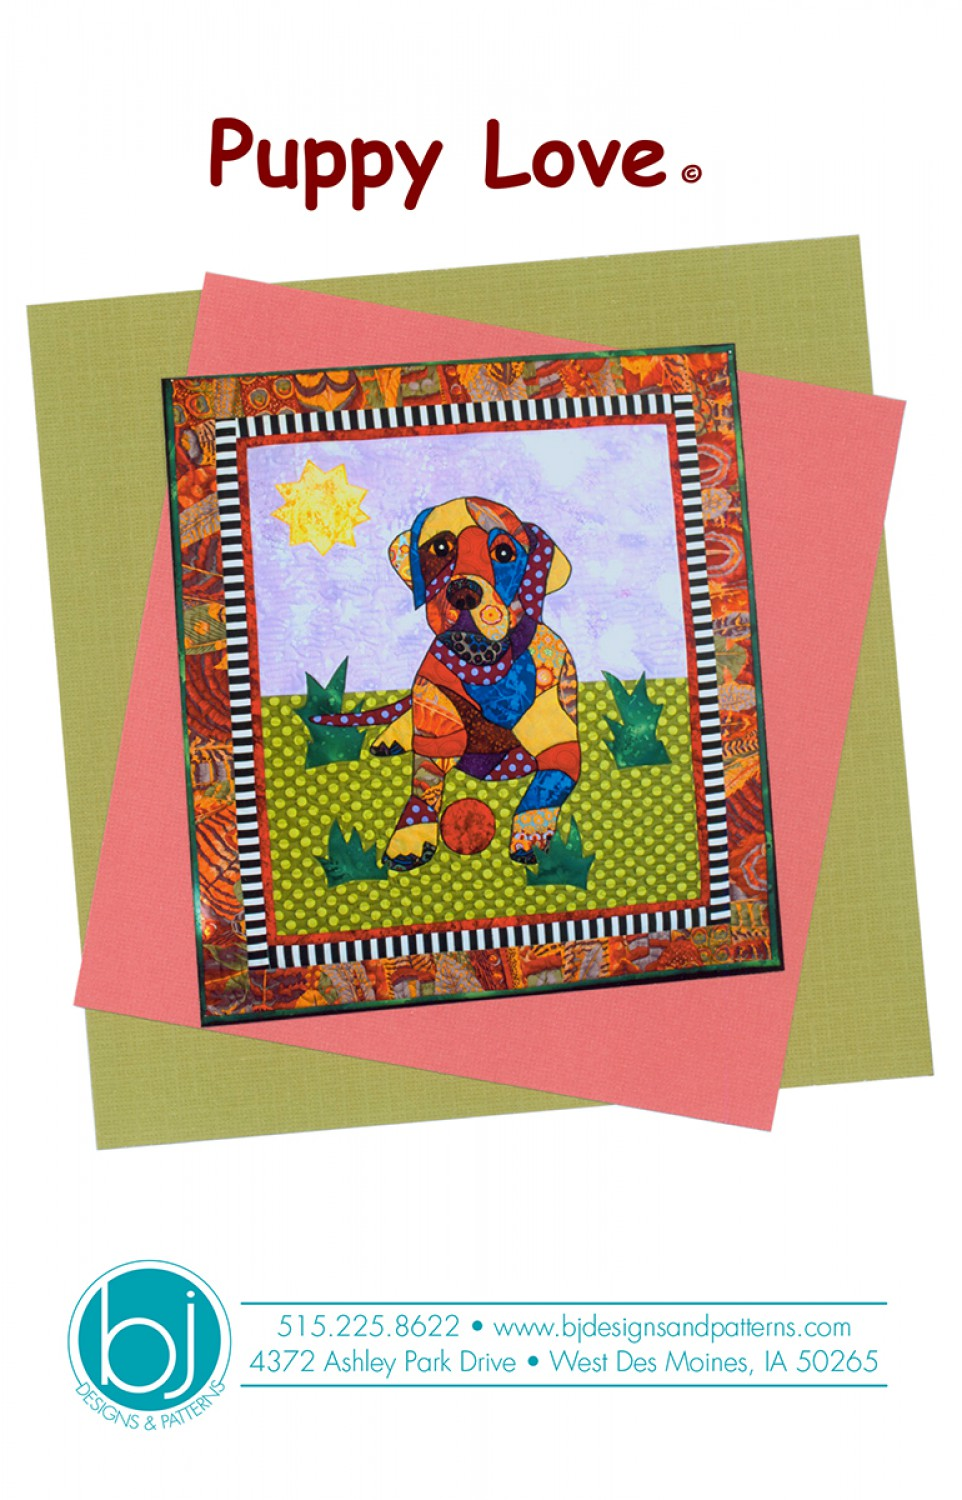 BJ Designs & Patterns Puppy Love Labrador Retriever Applique Quilt Pattern Front